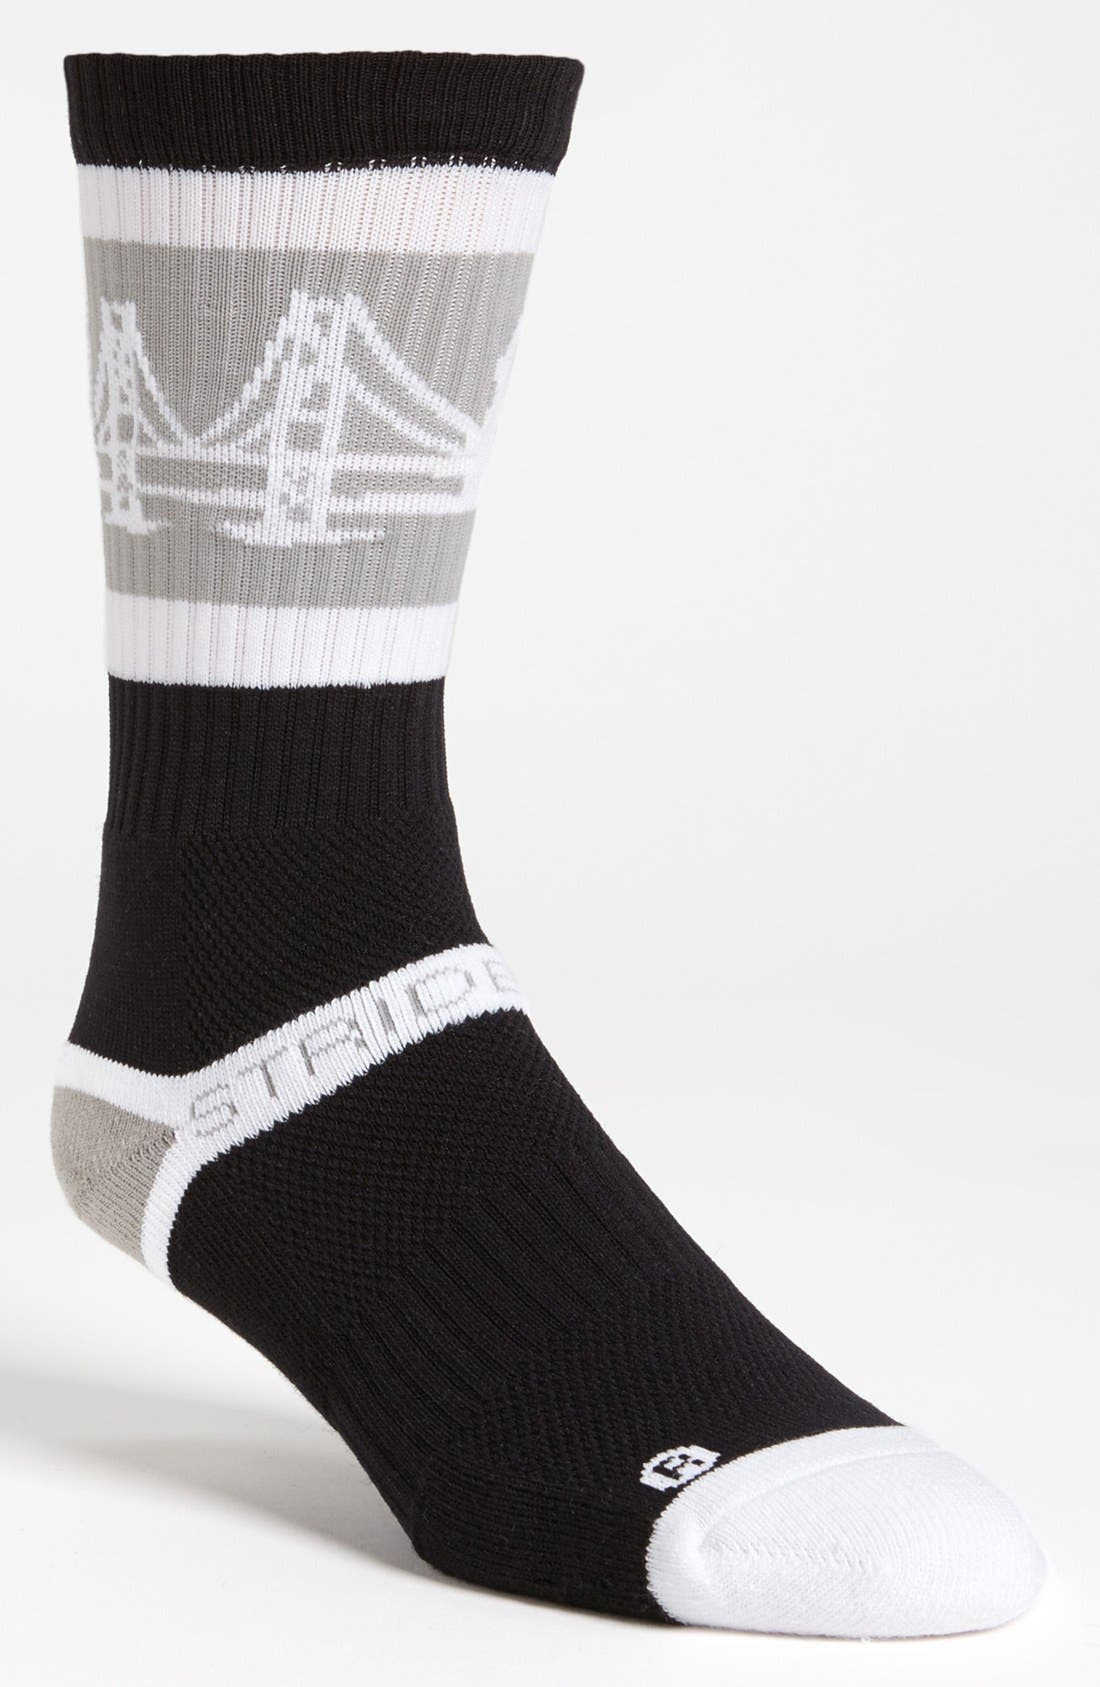 Main Image - STRIDELINE 'The Bay' Socks